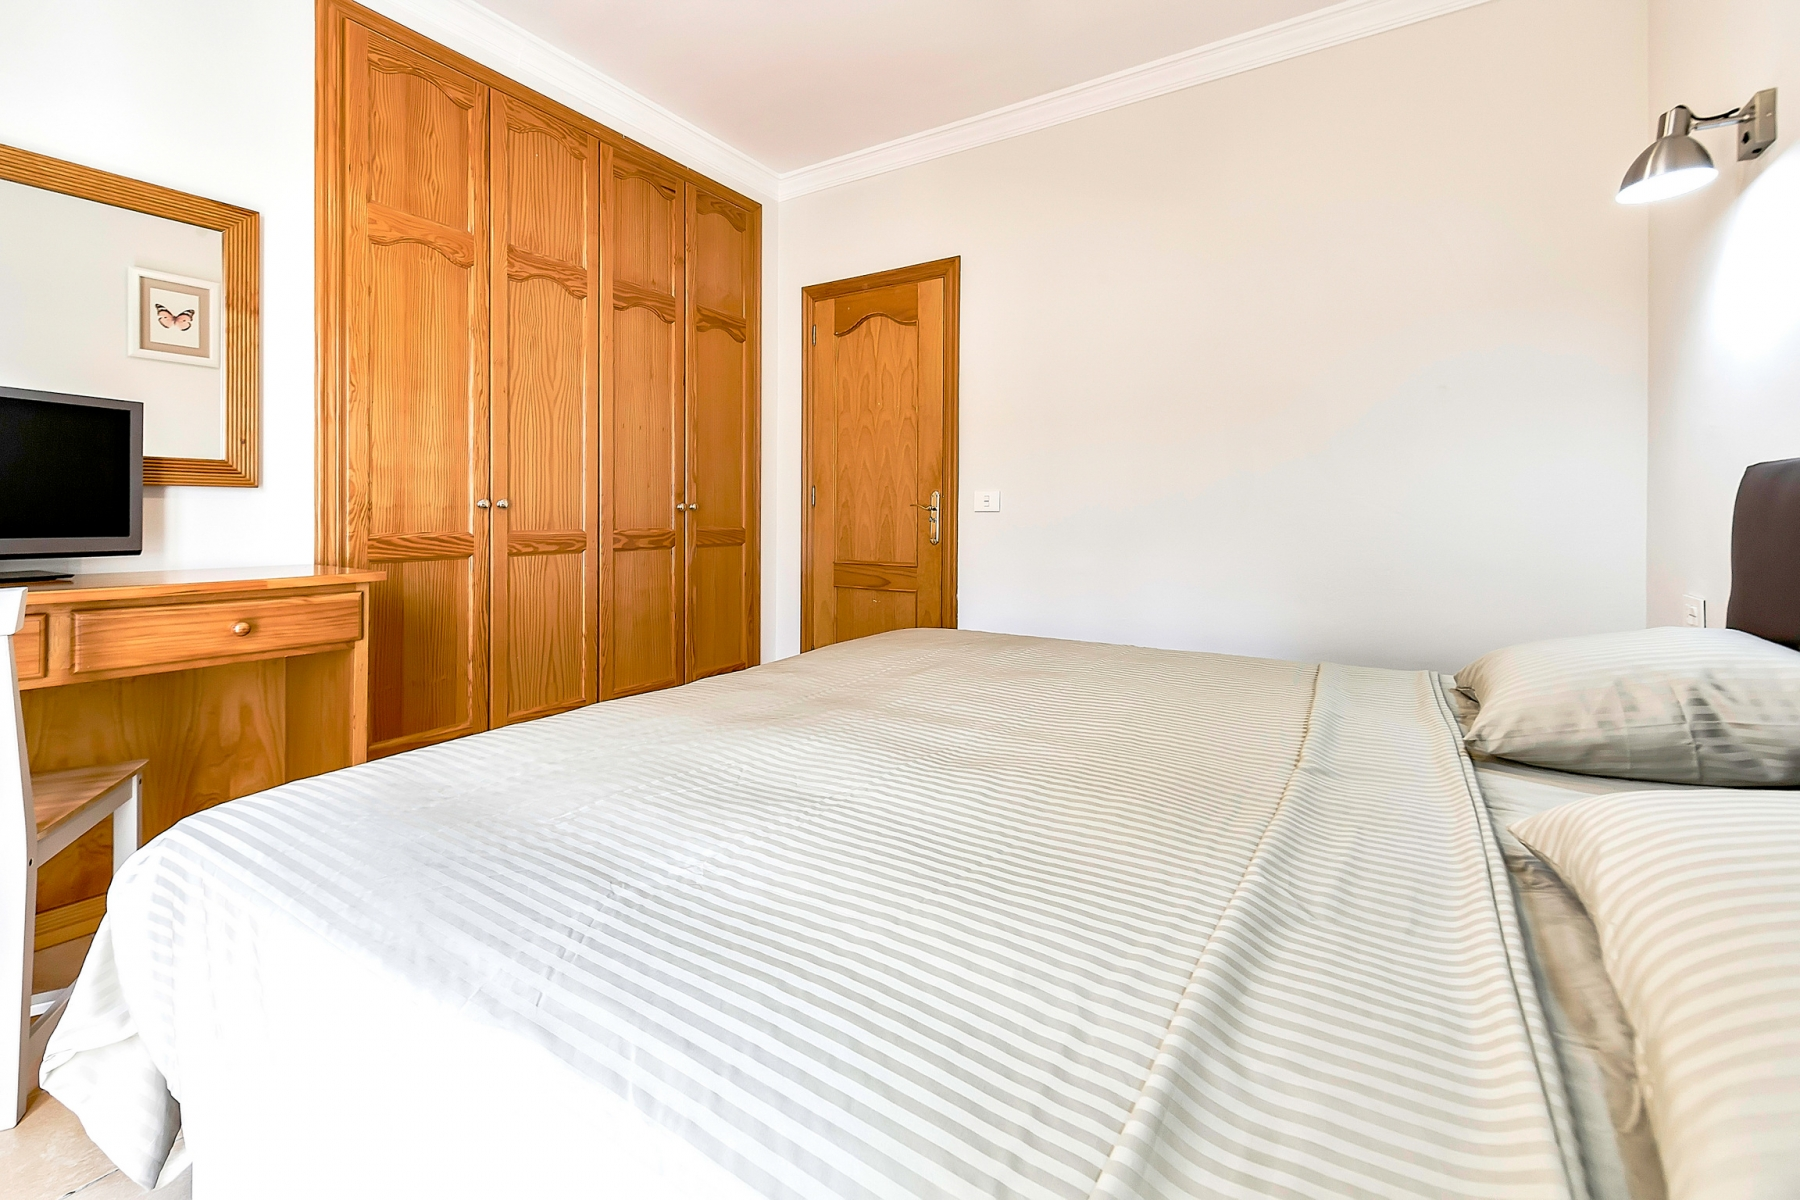 Properties for Sale in Tenerife, Canary Islands, Spain | SylkWayStar Real Estate. 1 bedroom apartment Yucca Park. Image-22577